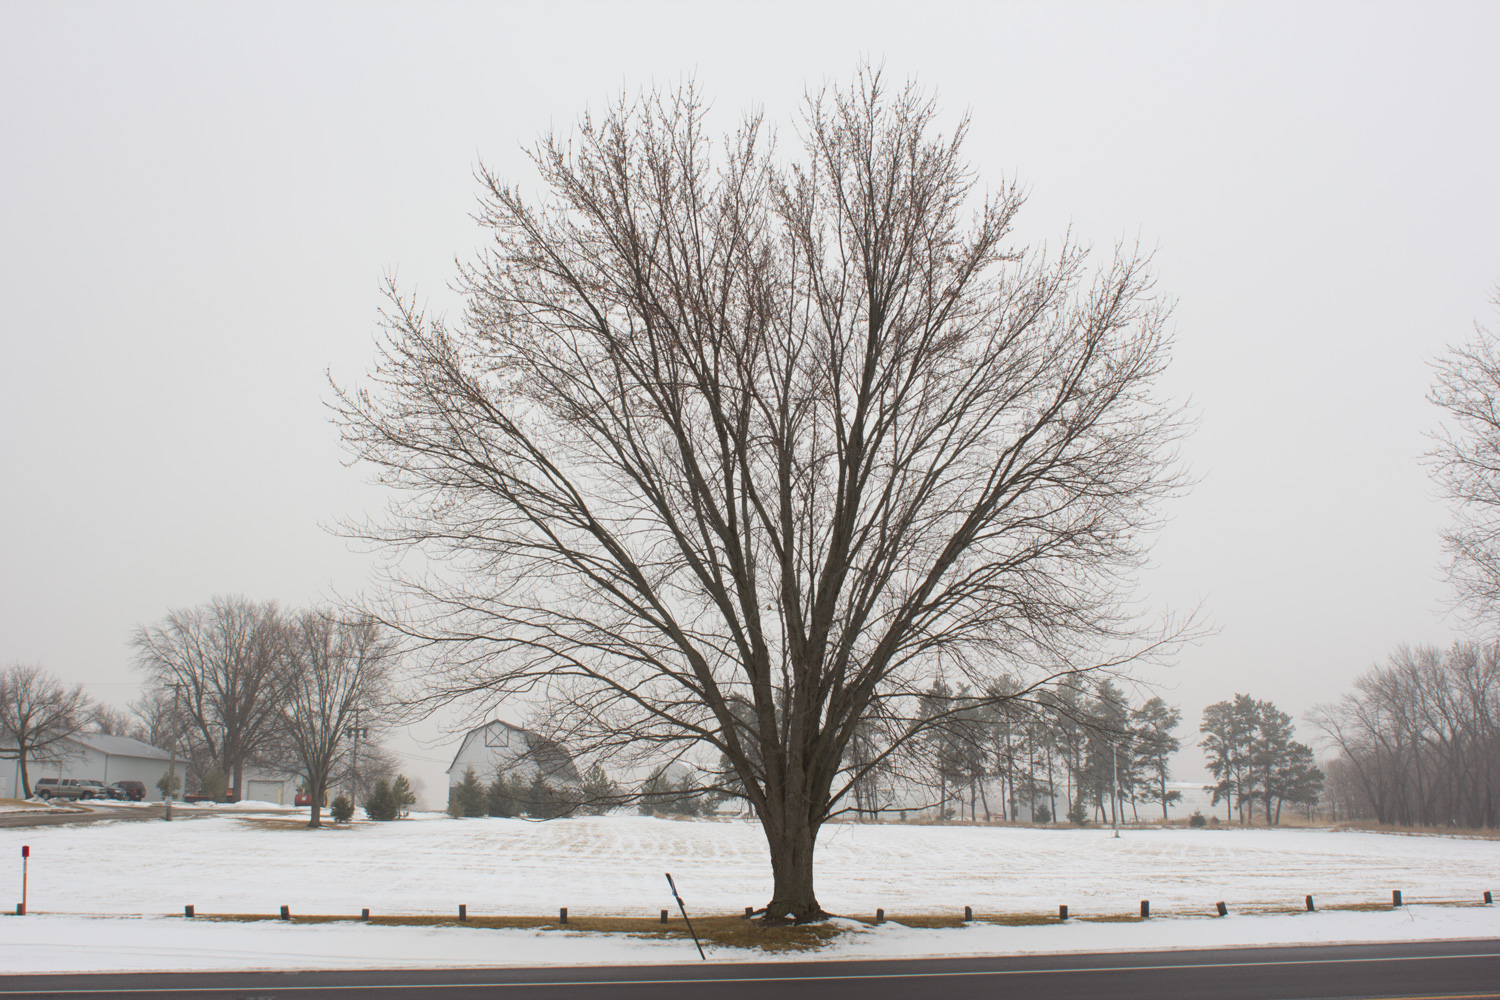 Hwy 301, Winter snow in St. Cloud, Bare tree in winter, Bare tree in Minnesota, Richard Lund